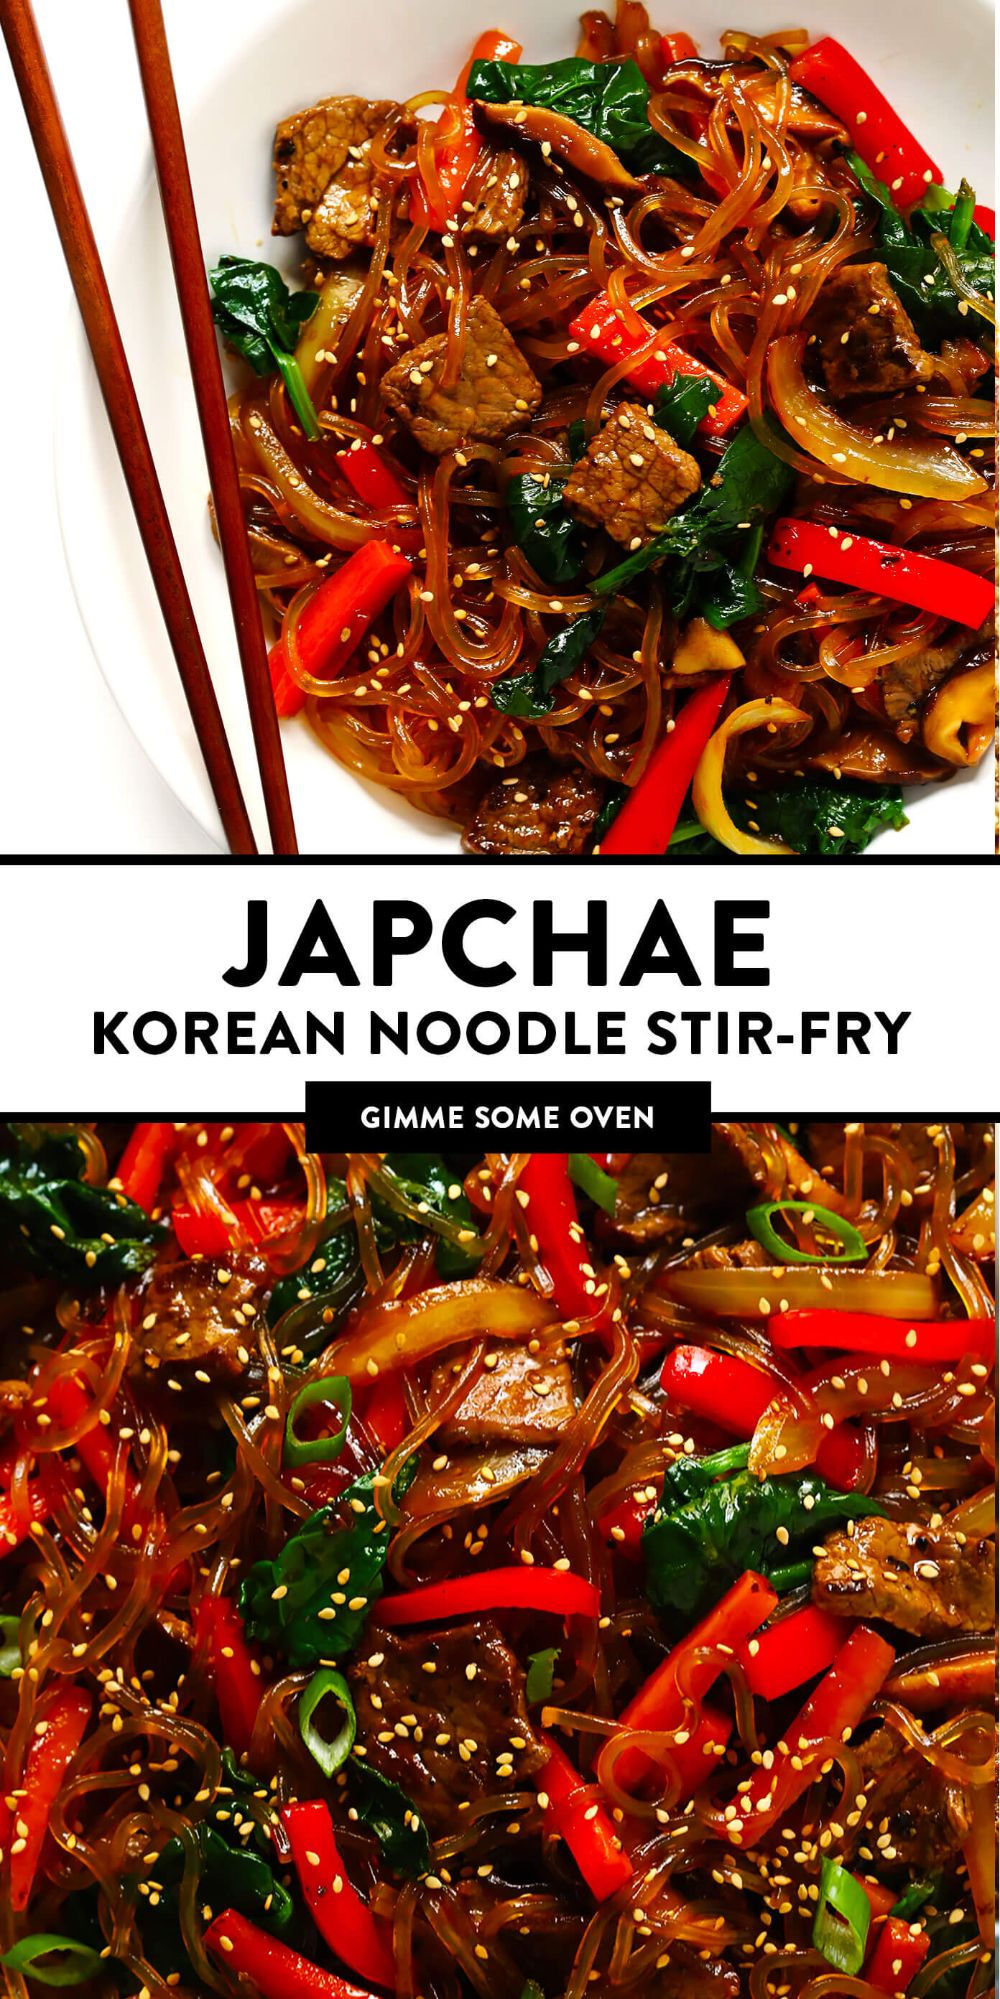 This Japchae (Korean noodle stir-fry) recipe is easy to make in just 30 minutes. It can be customized with your choice of veggies and protein (beef, chicken, shrimp, or tofu). And it is SO delicious! | gimmesomeoven.com #korean #noodle #stirfry #saute #pasta #beef #glutenfree #vegetarian #vegan #asian #dinner #mealprep #healthy